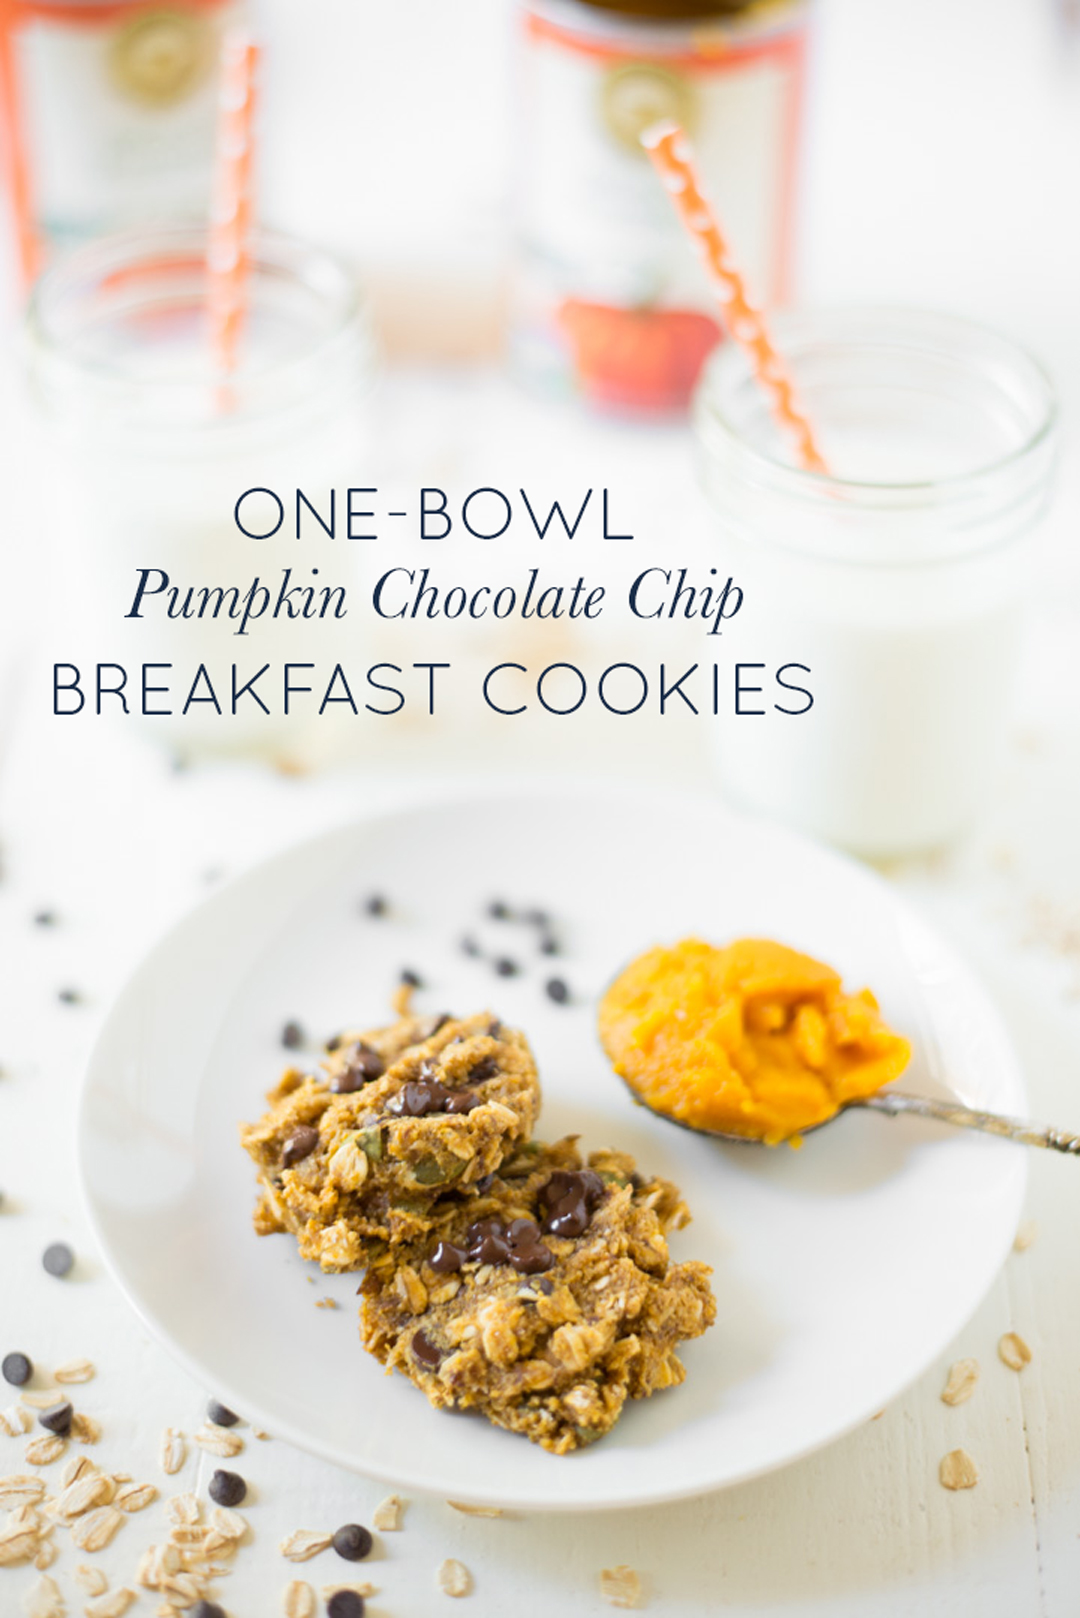 One-Bowl Pumpkin Chocolate Chip Breakfast Cookies are easy to make and perfect for a quick breakfast or snack. A naturally sweetened, gluten-free, and dairy-free, recipe! #realfoodwholelife #realfoodwholeliferecipe #glutenfree #dairyfree #healthy #clean-eating #fall #fallrecipe #pumpkin #pumpkinrecipe #halloween #halloweenparty #healthyhalloween #thanskgiving #healthythanksgiving #pumpkinspice